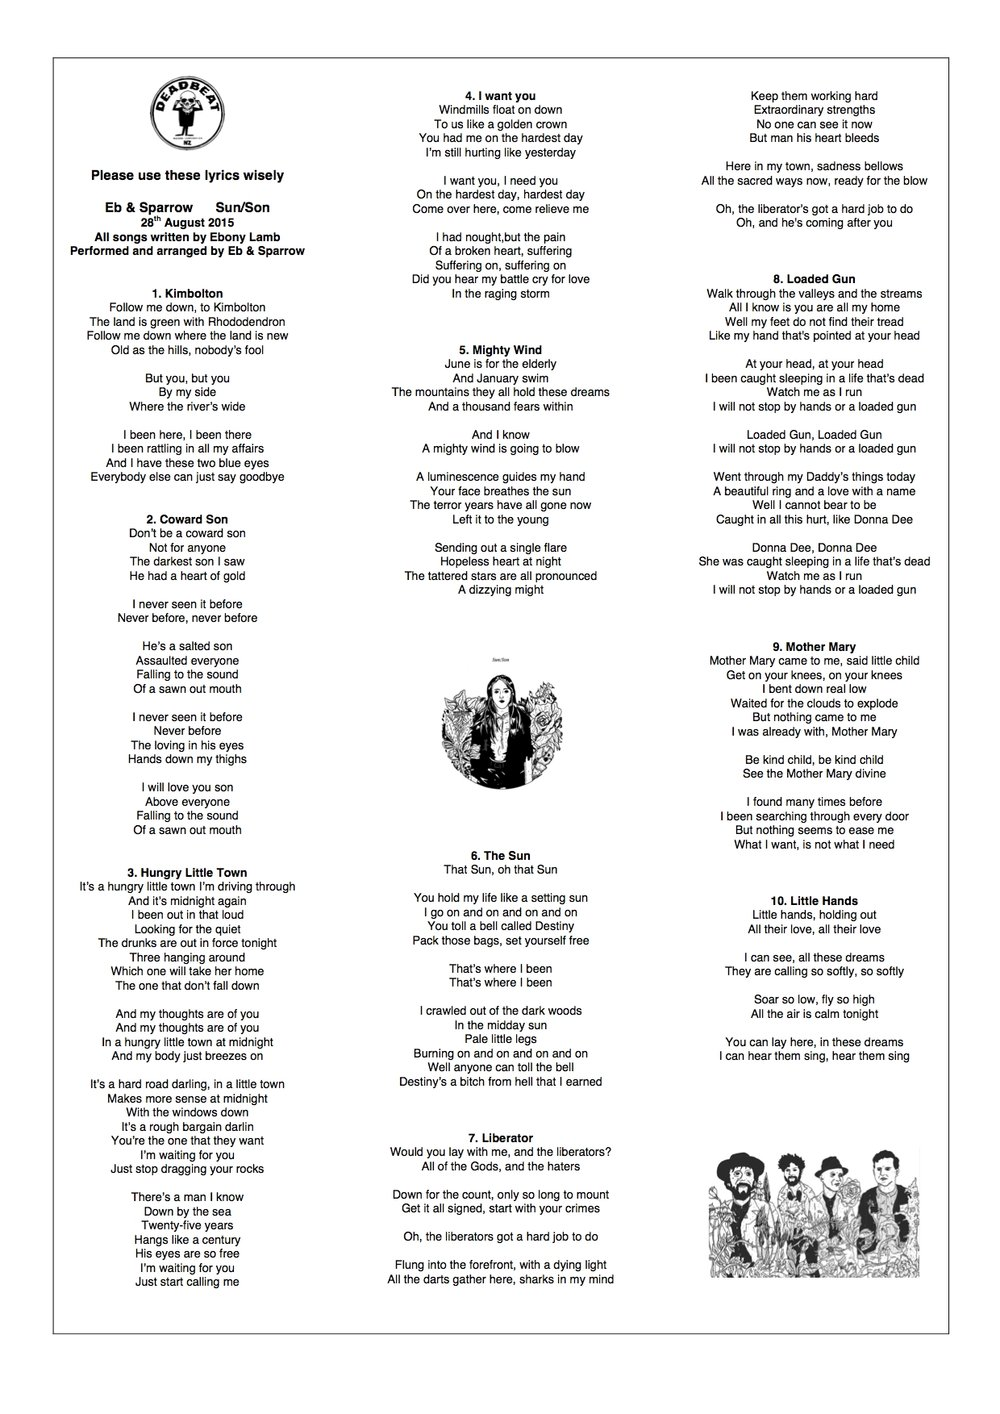 SUN/SON LYRIC SHEET